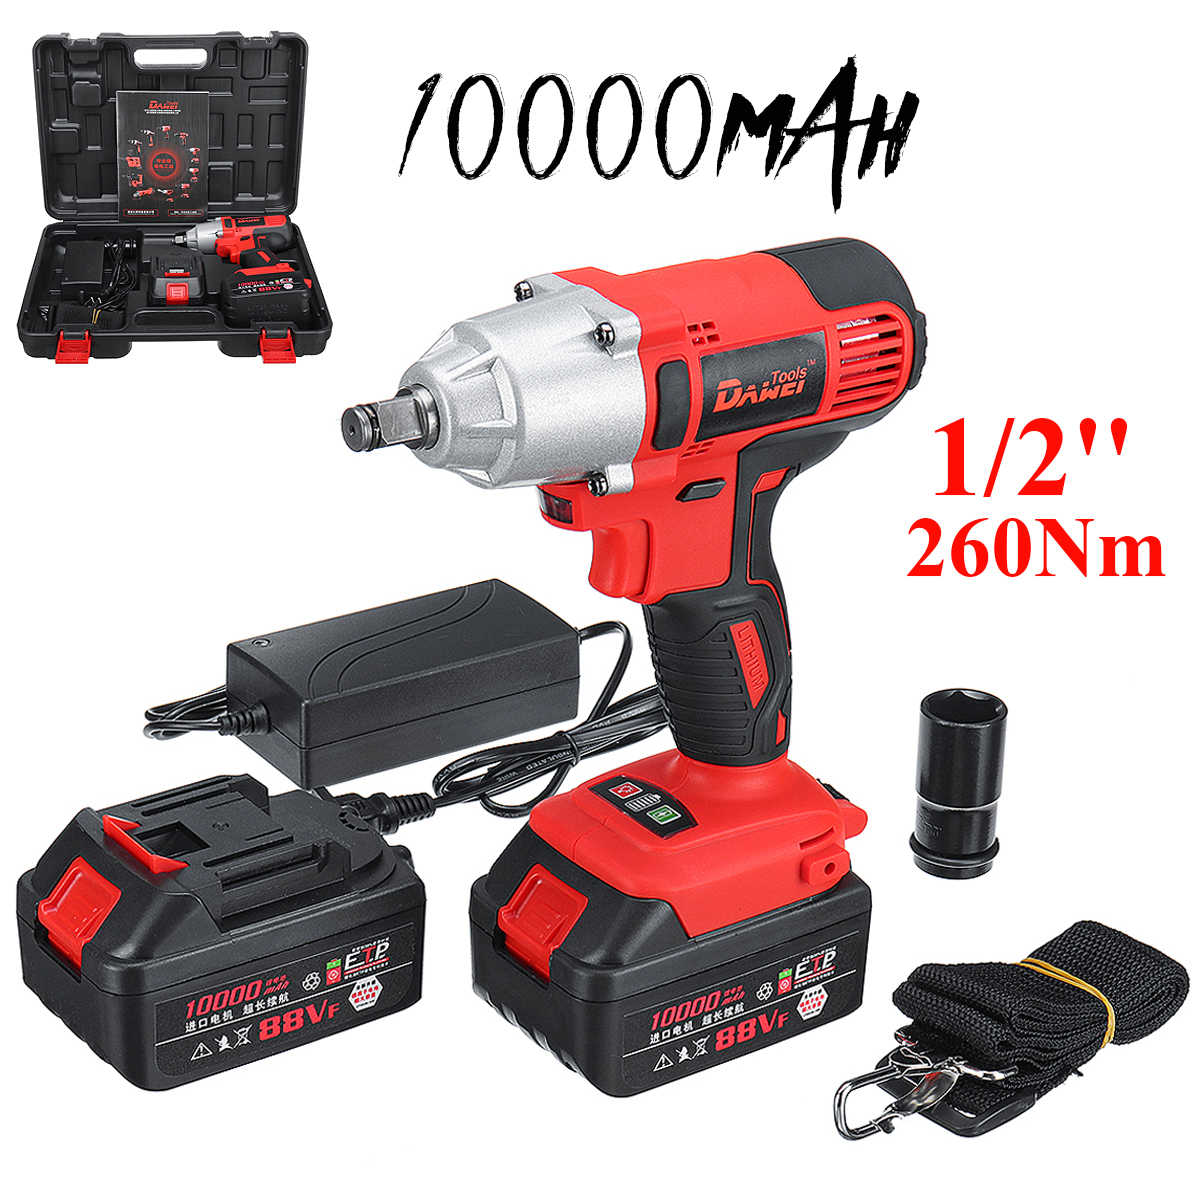 21v 10000mah Electric Impact Wrench Cordless High Torque With 2 Battery